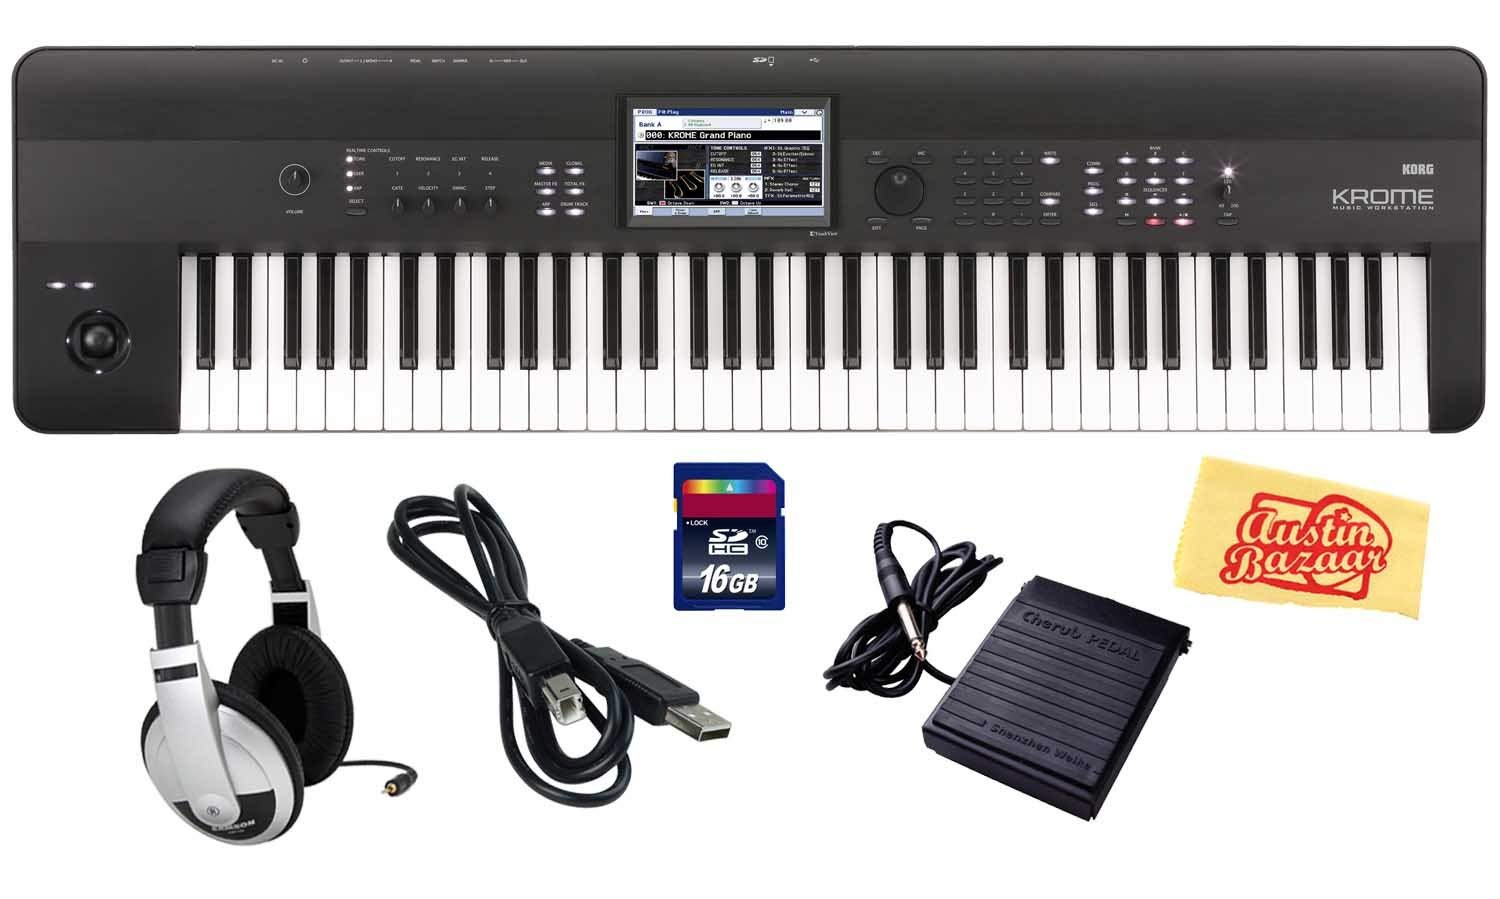 Korg Krome 73 Key Semi-Weighted Music Workstation Keyboard Bundle with SD Card, USB Cable, Sustain Pedal, Headphones and Polishing Cloth by Korg